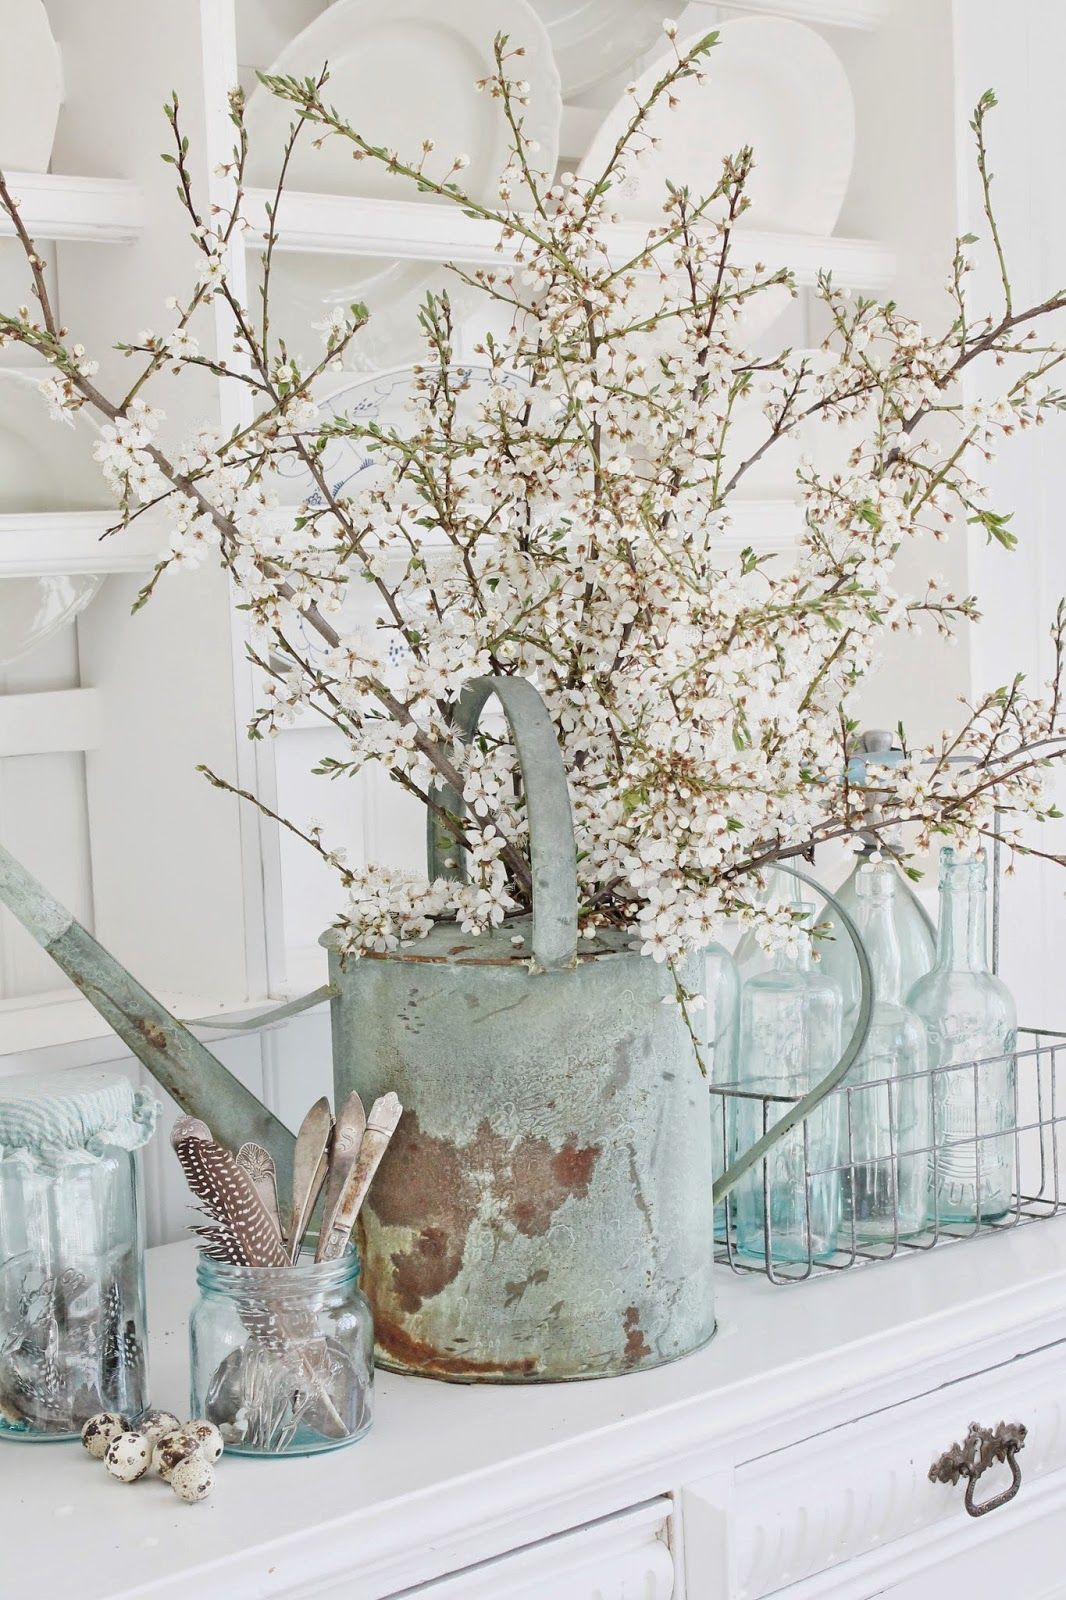 Old Watering Can Turned Into Flower Vase Soft Colors Shabby Chic Vieja Regadera Convertida En Florero Country